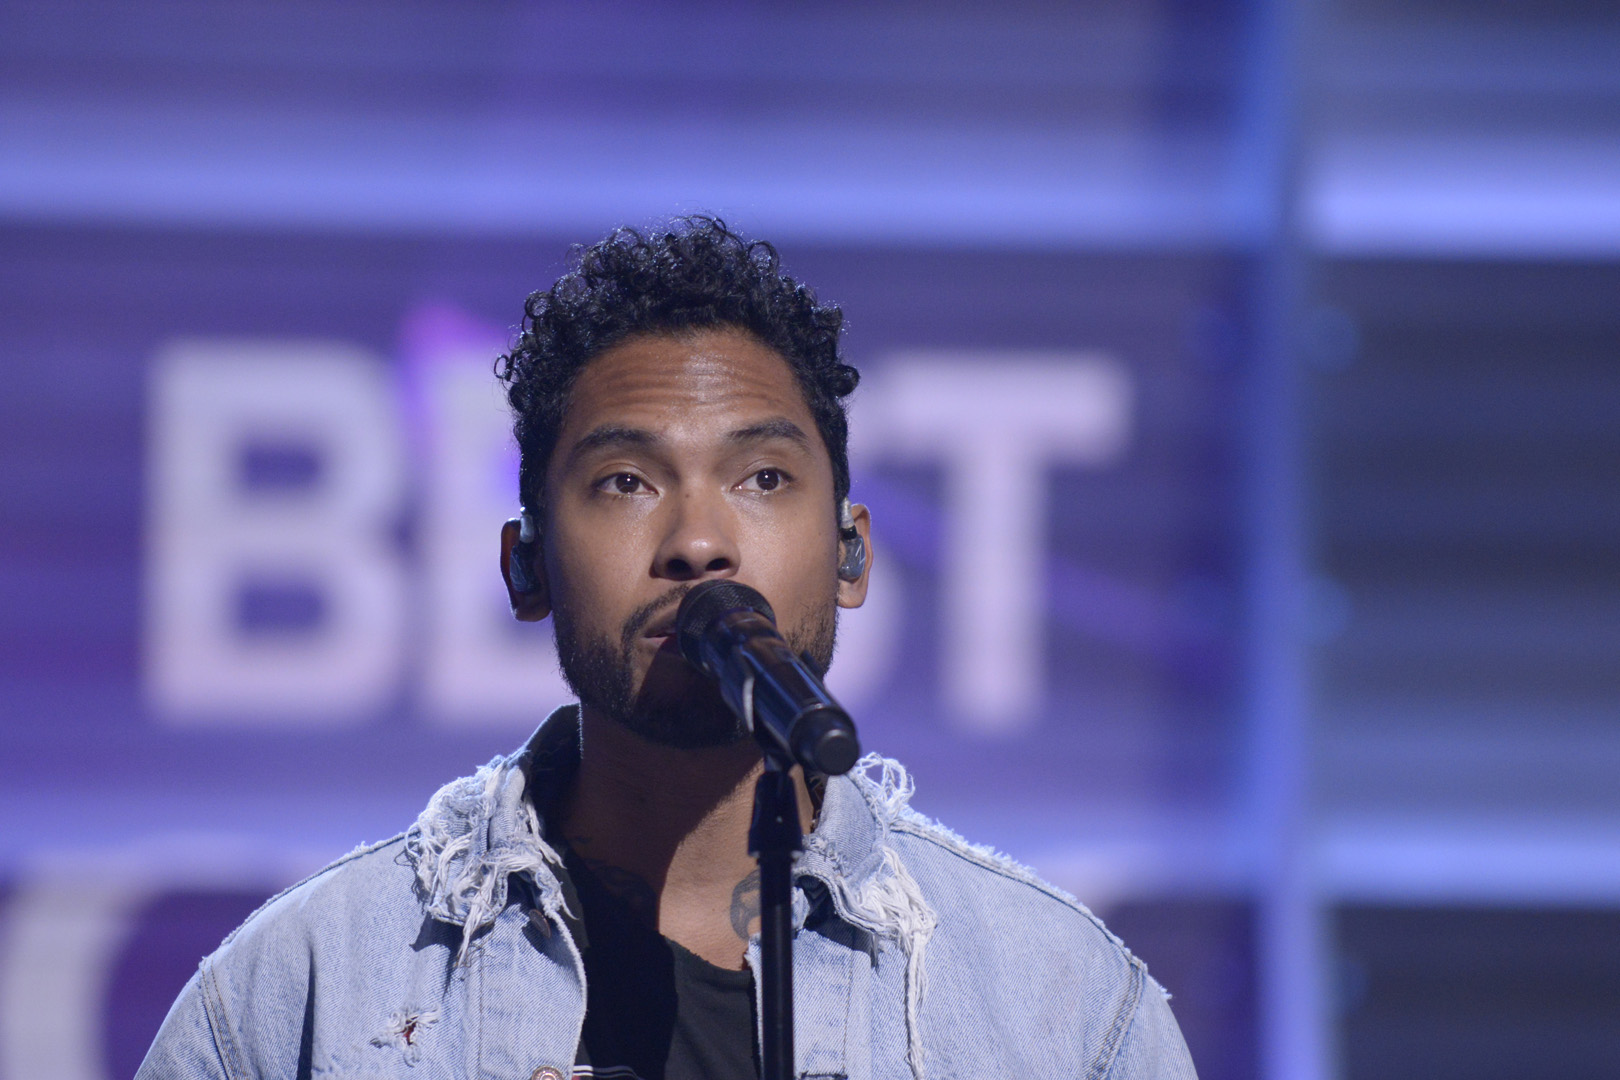 The spotlight's on Miguel as he rehearses his tribute to Michael Jackson.